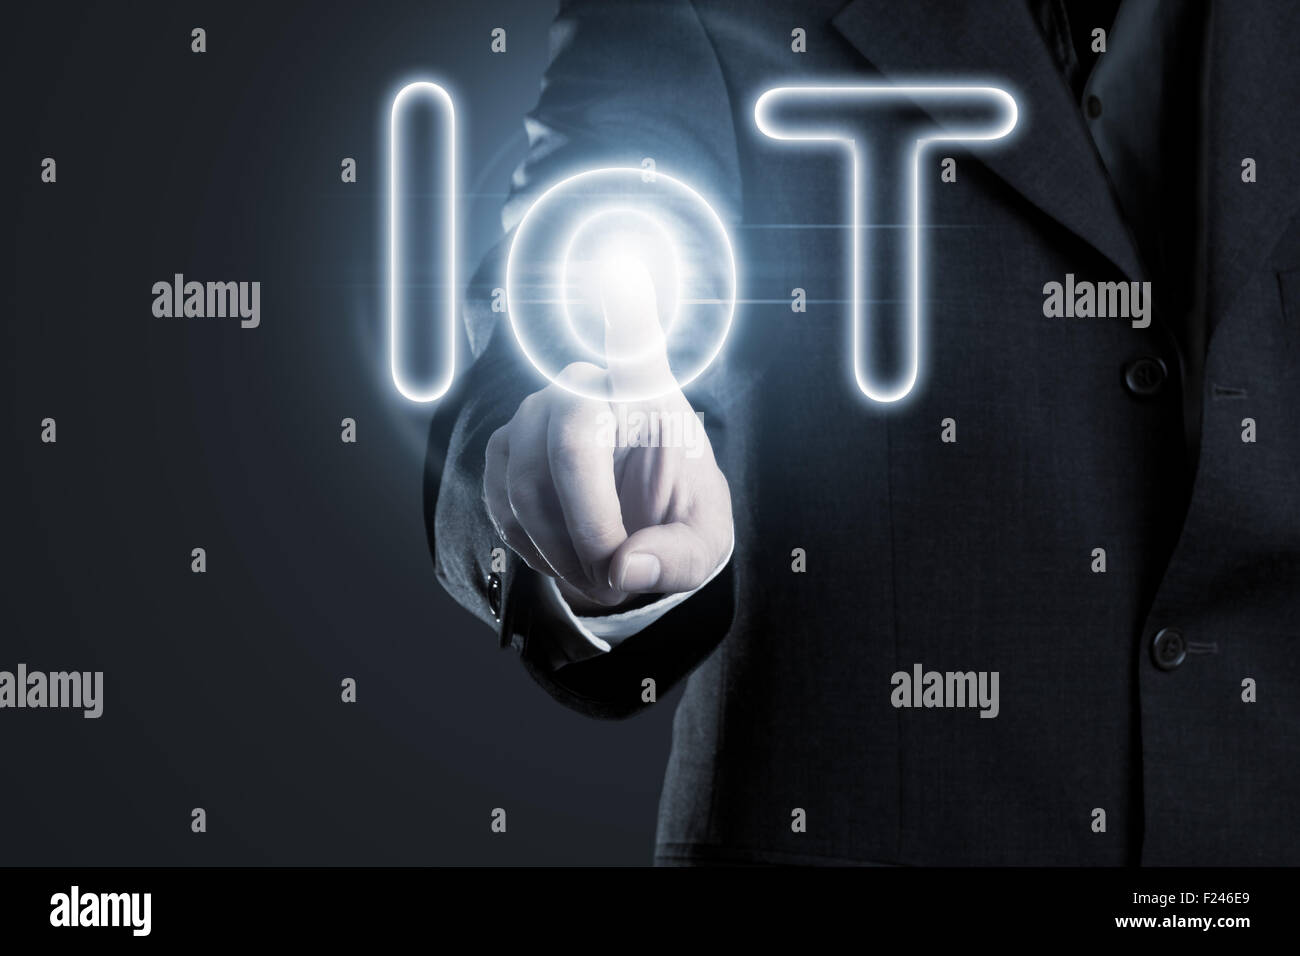 Man touching IoT (internet of things) text on display - Stock Image